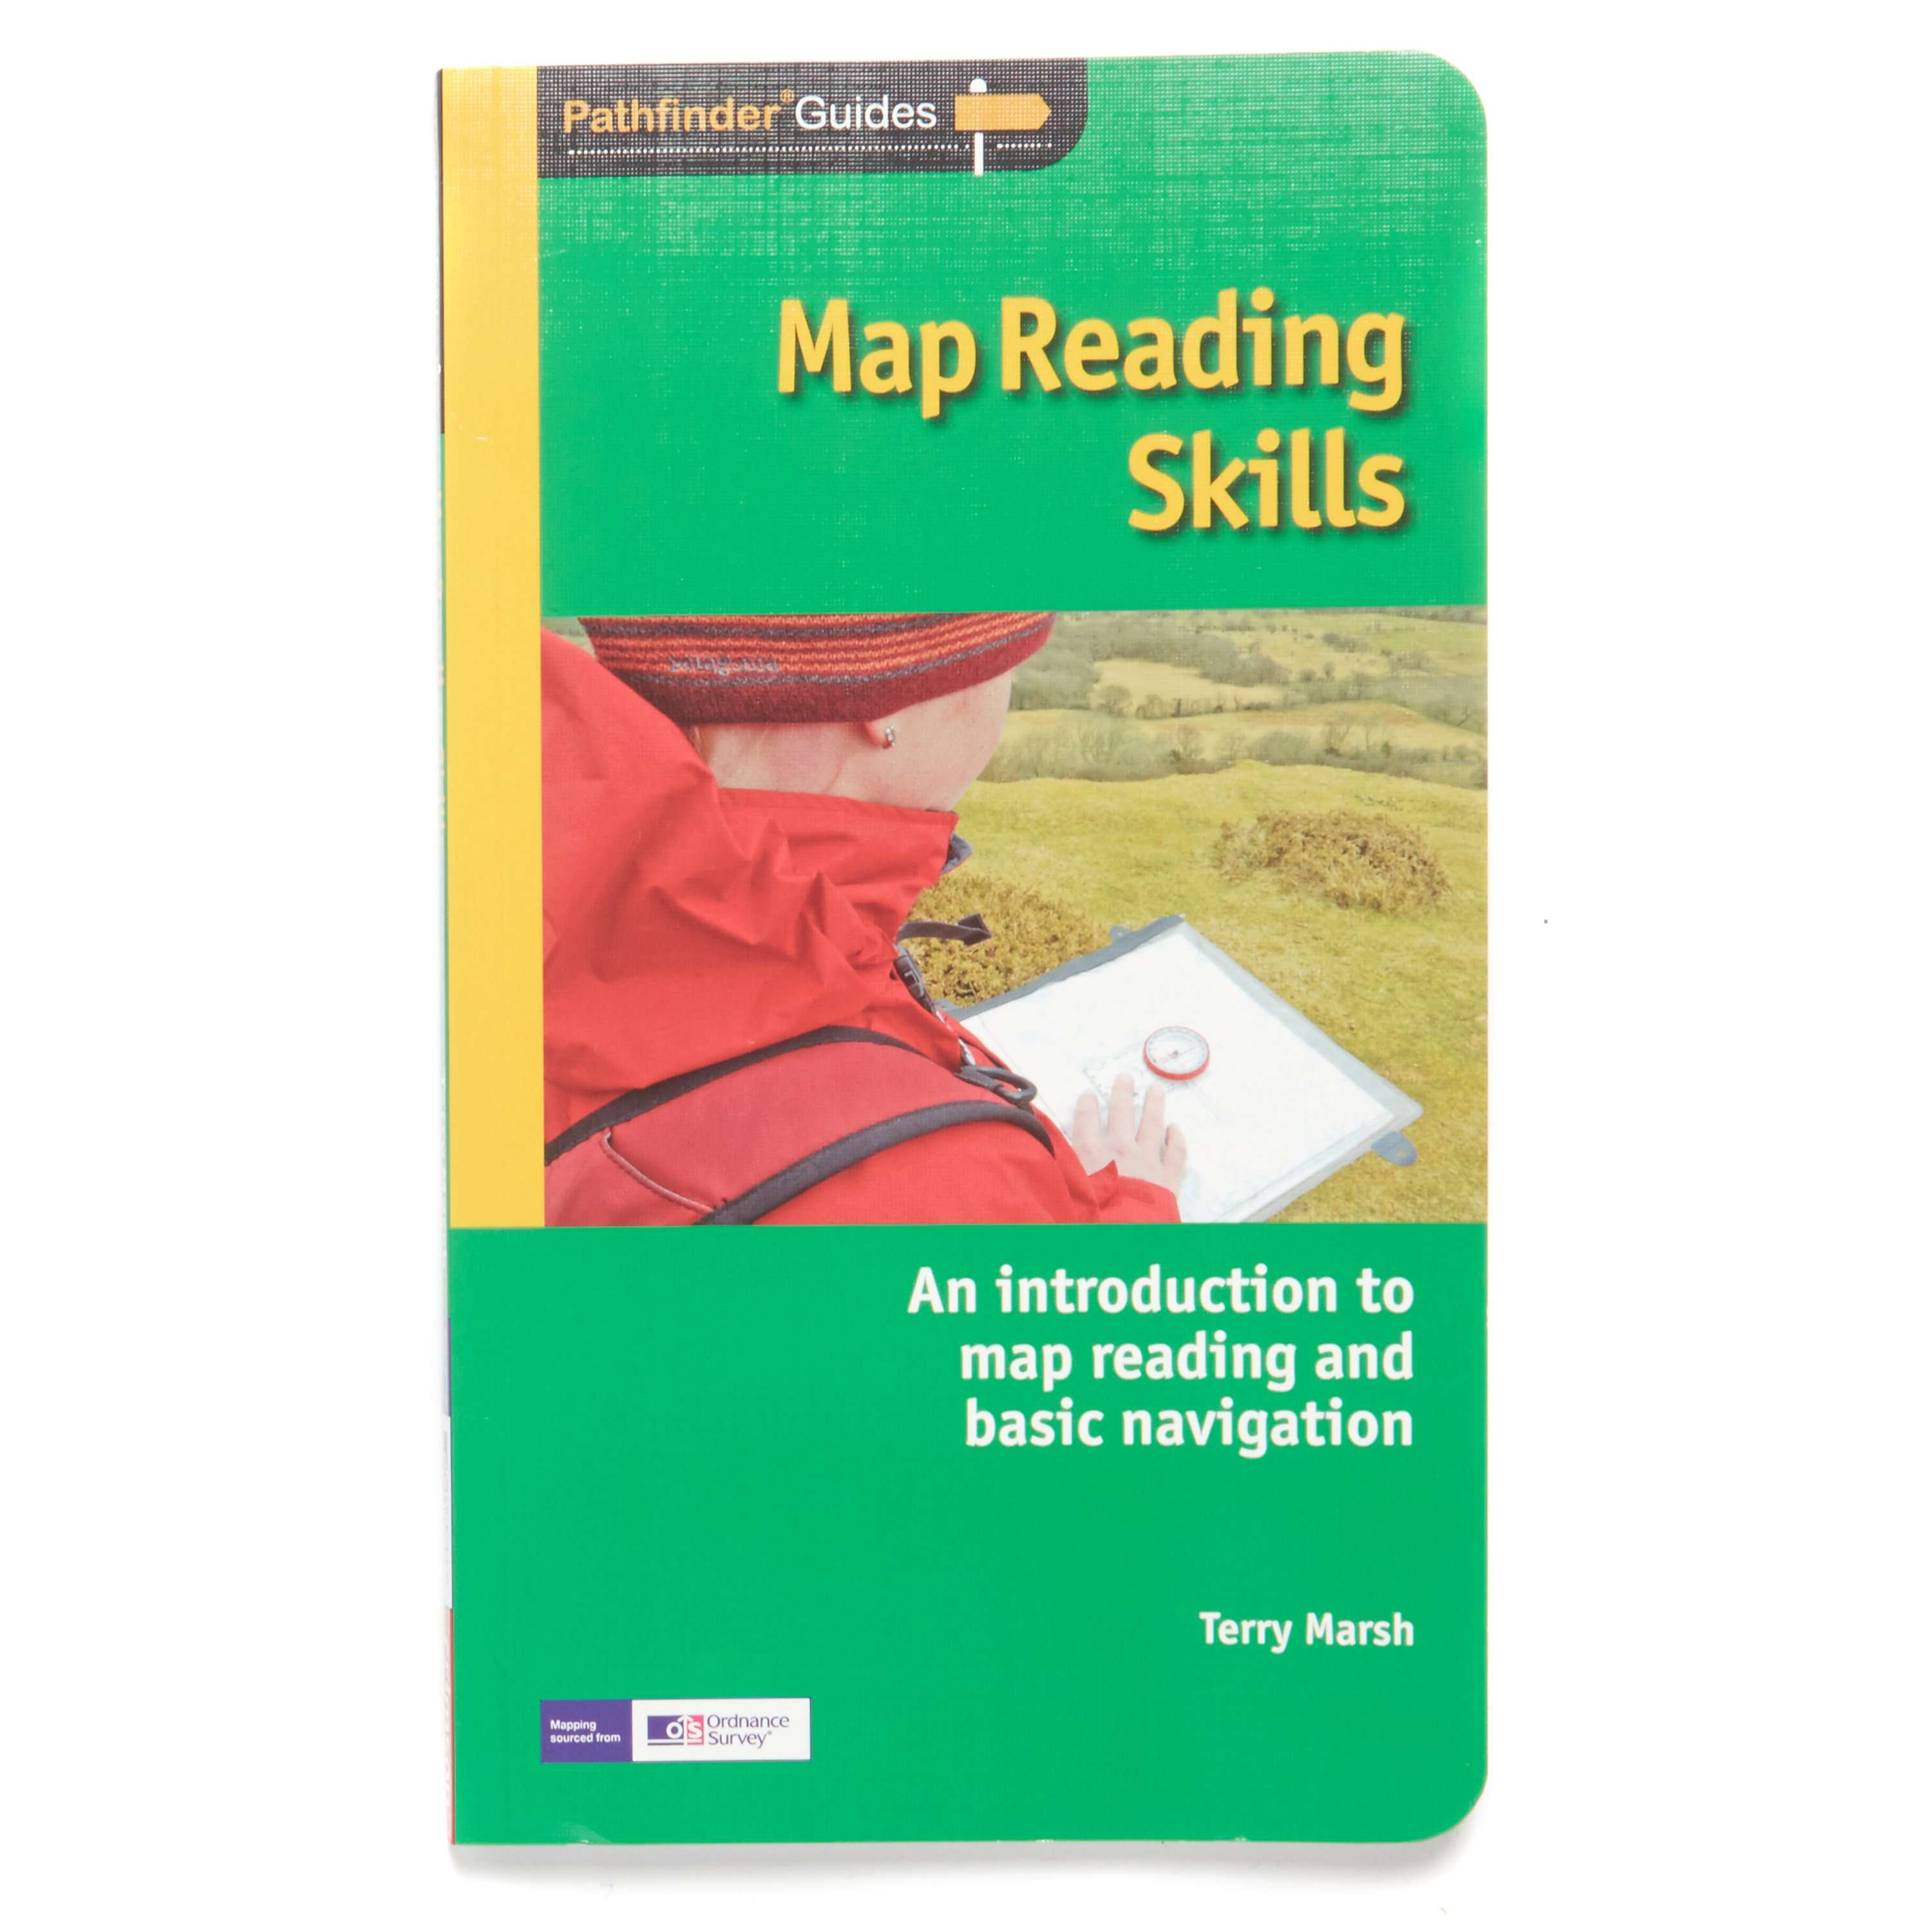 PATHFINDER Pathfinder Guides - Map Reading Skills